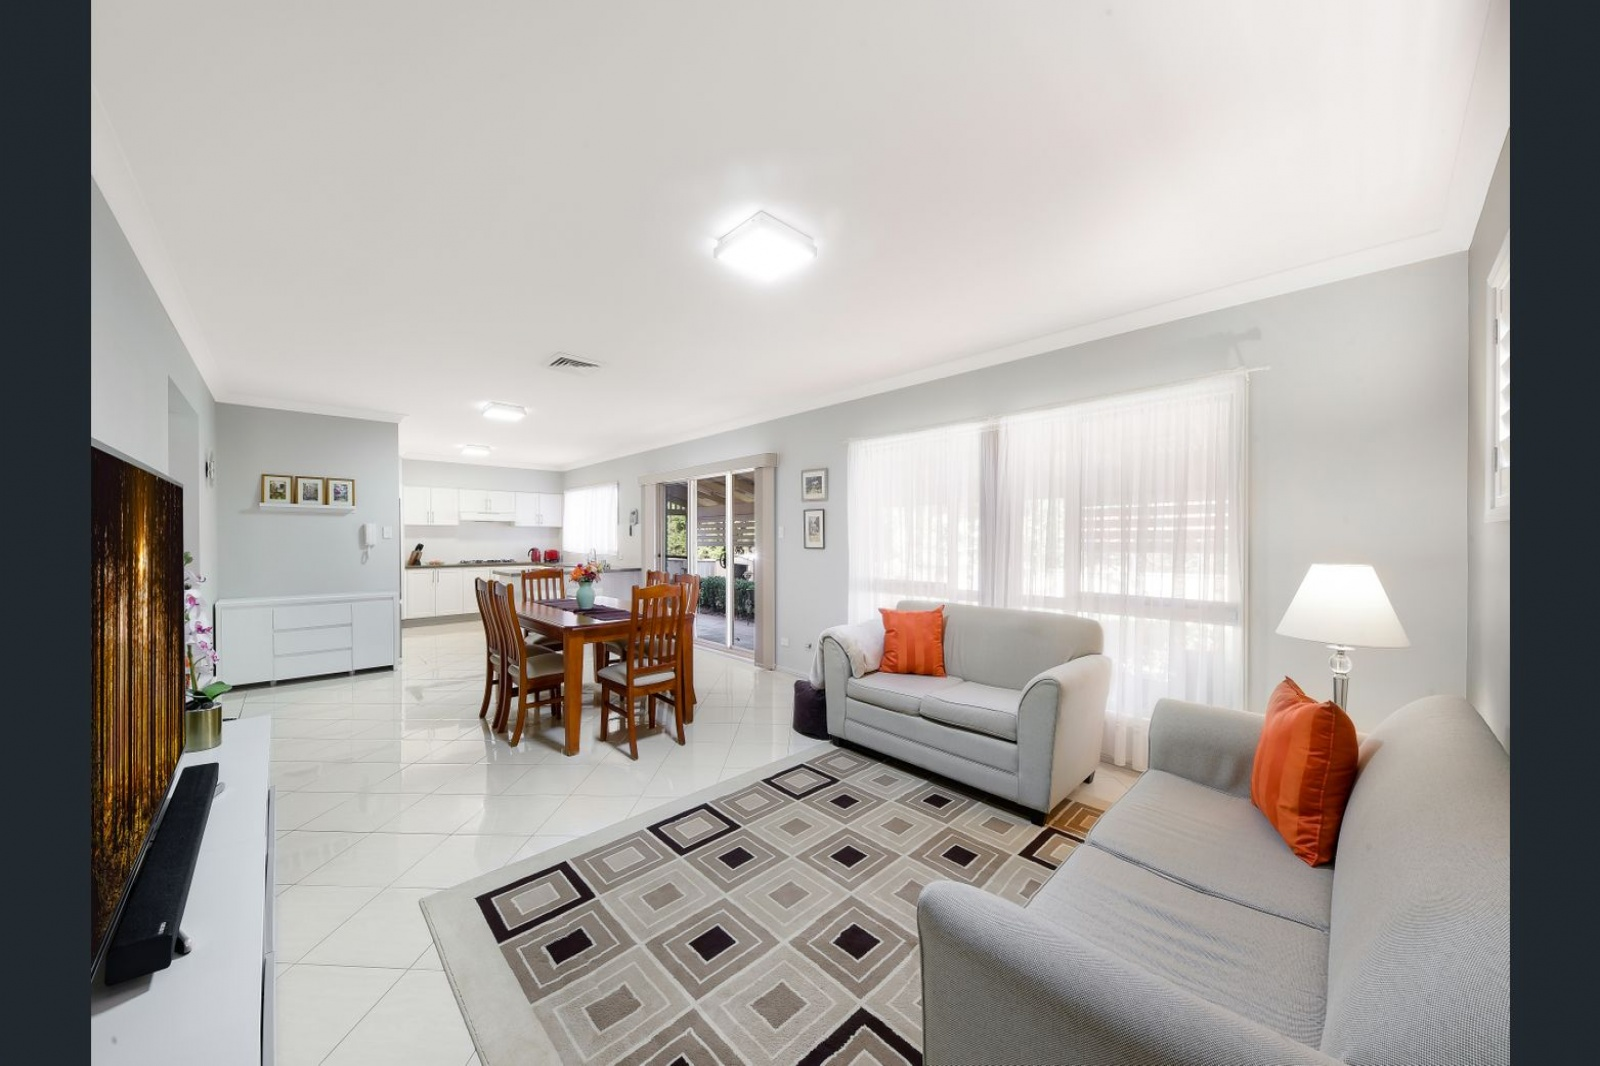 53 Bradley Drive,Harrington Park,NSW,5 Bedrooms Bedrooms,2 BathroomsBathrooms,House,Bradley Drive,1465